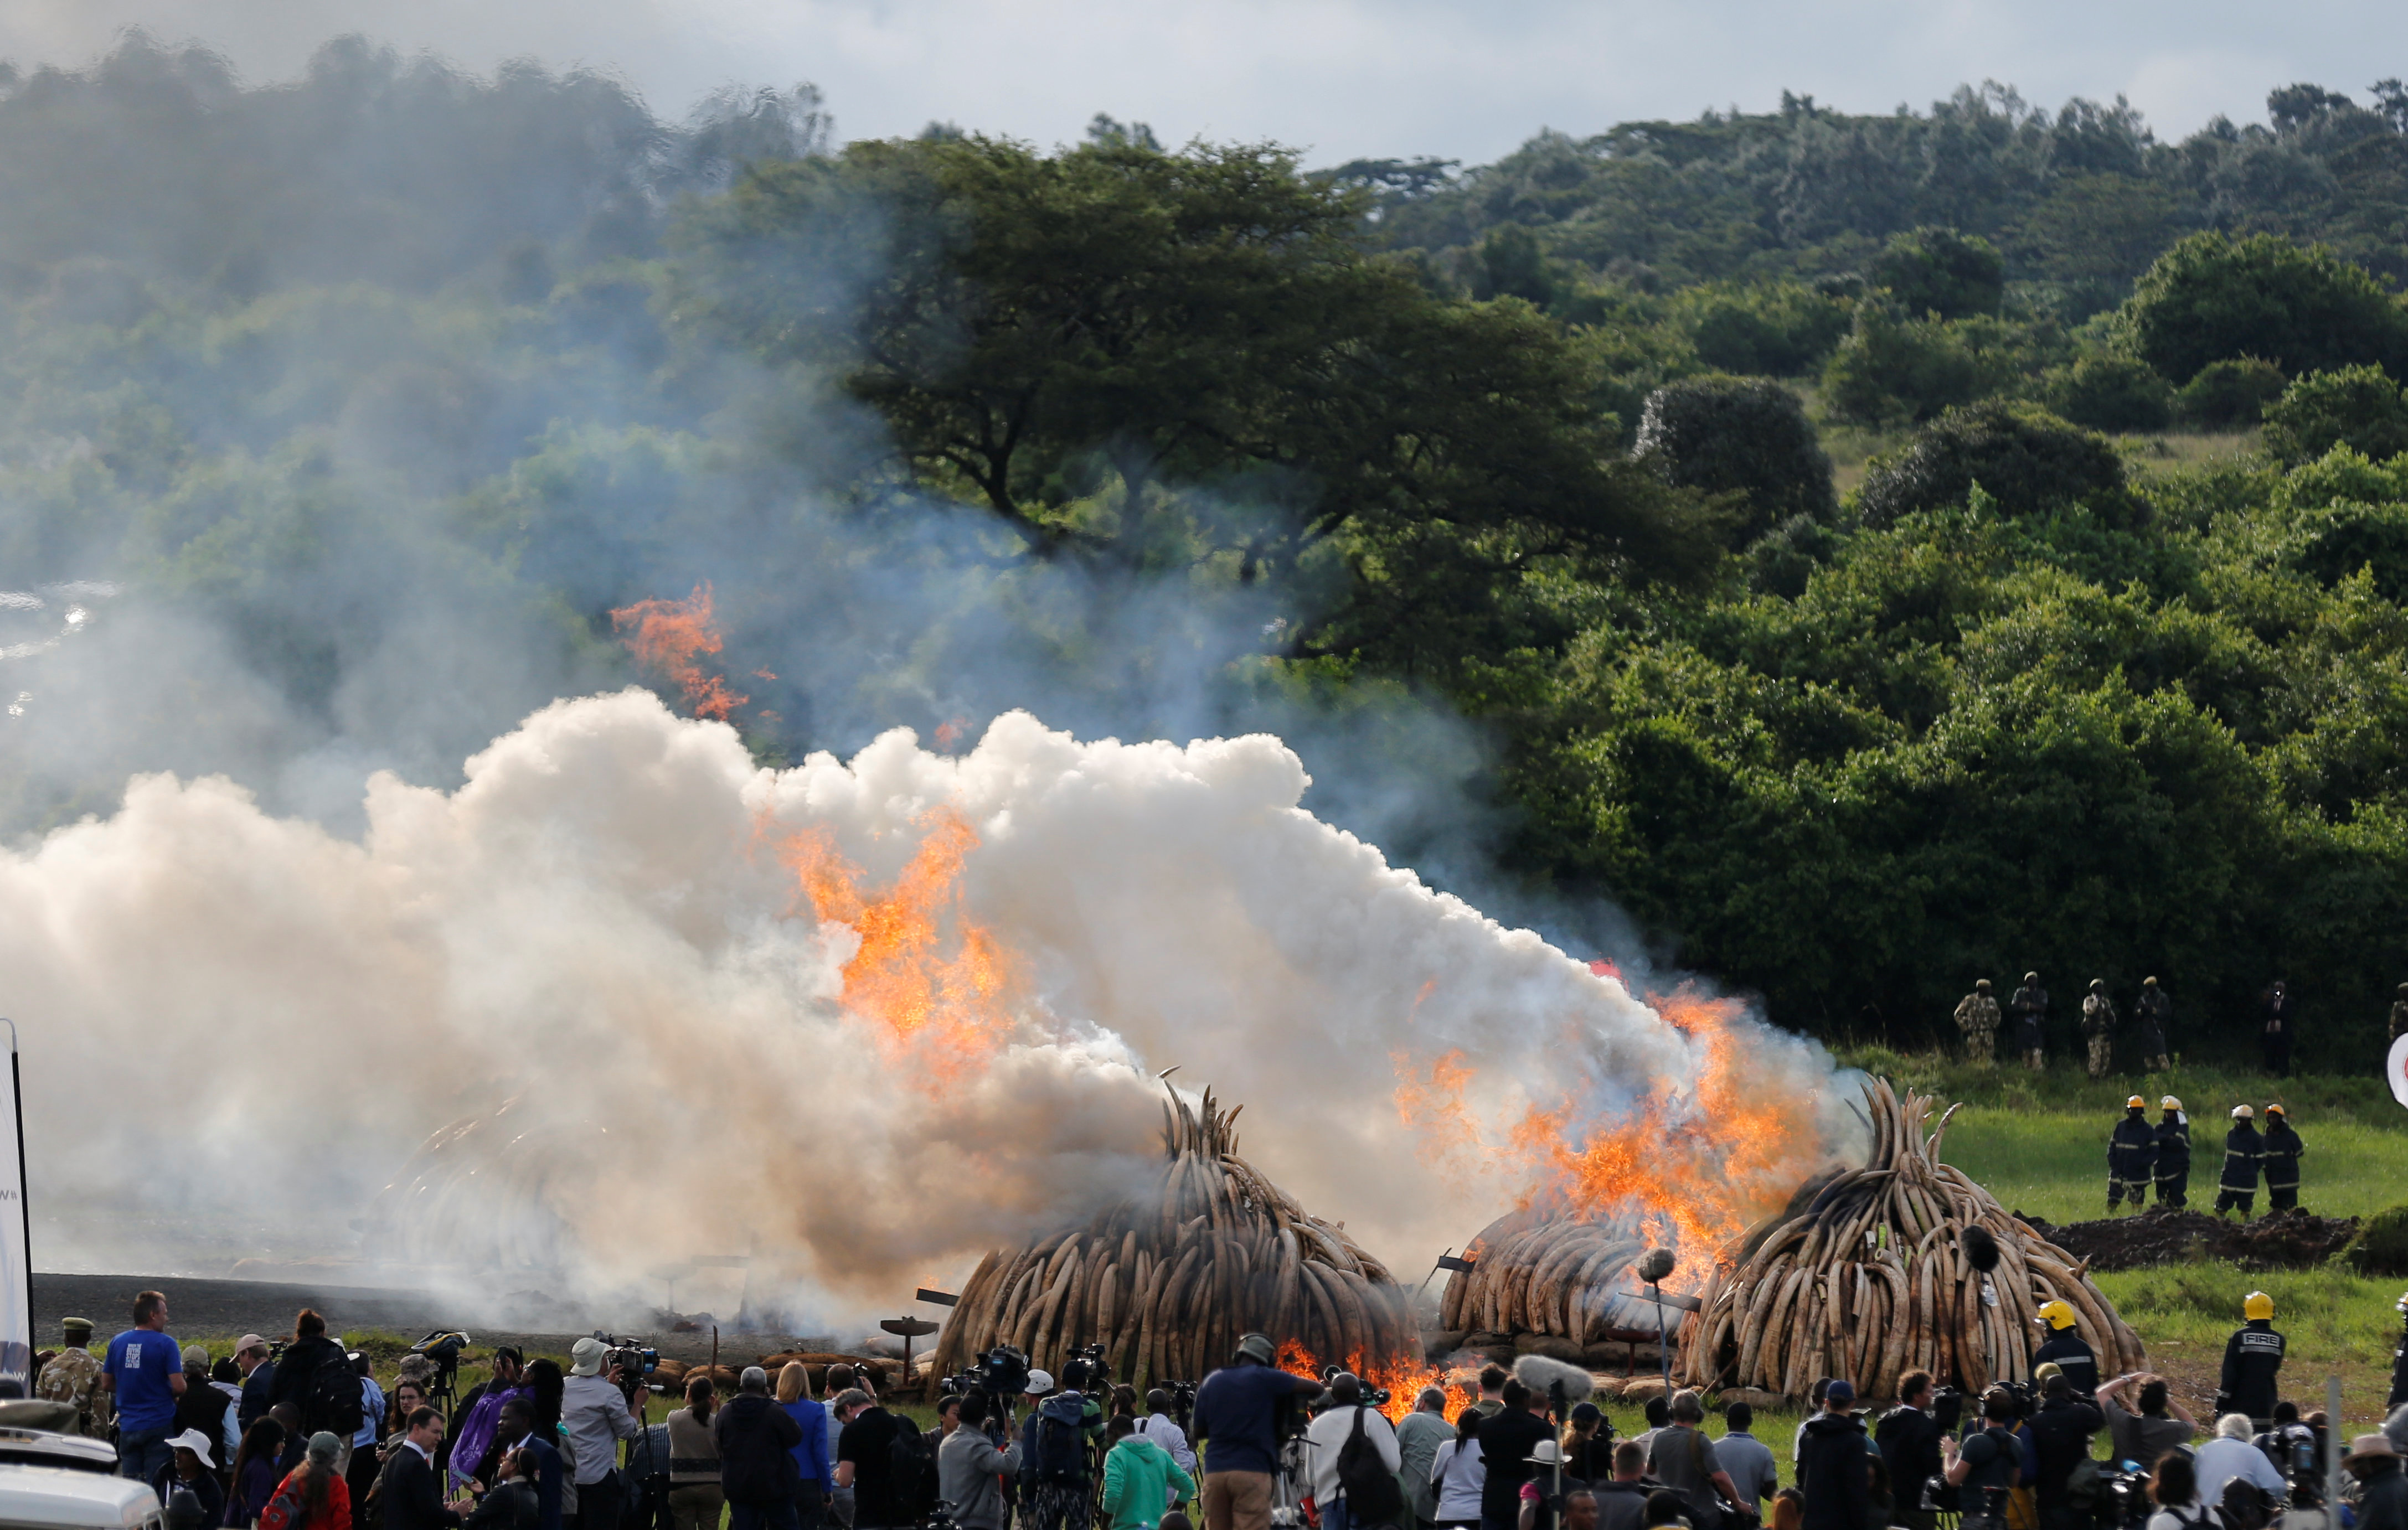 A general view shows part of the 105 tonnes of elephant tusks confiscated ivory from smugglers and poachers burning at the Nairobi National Park near Nairobi, Kenya, April 30, 2016. REUTERS/Thomas Mukoya - RTX2C94J